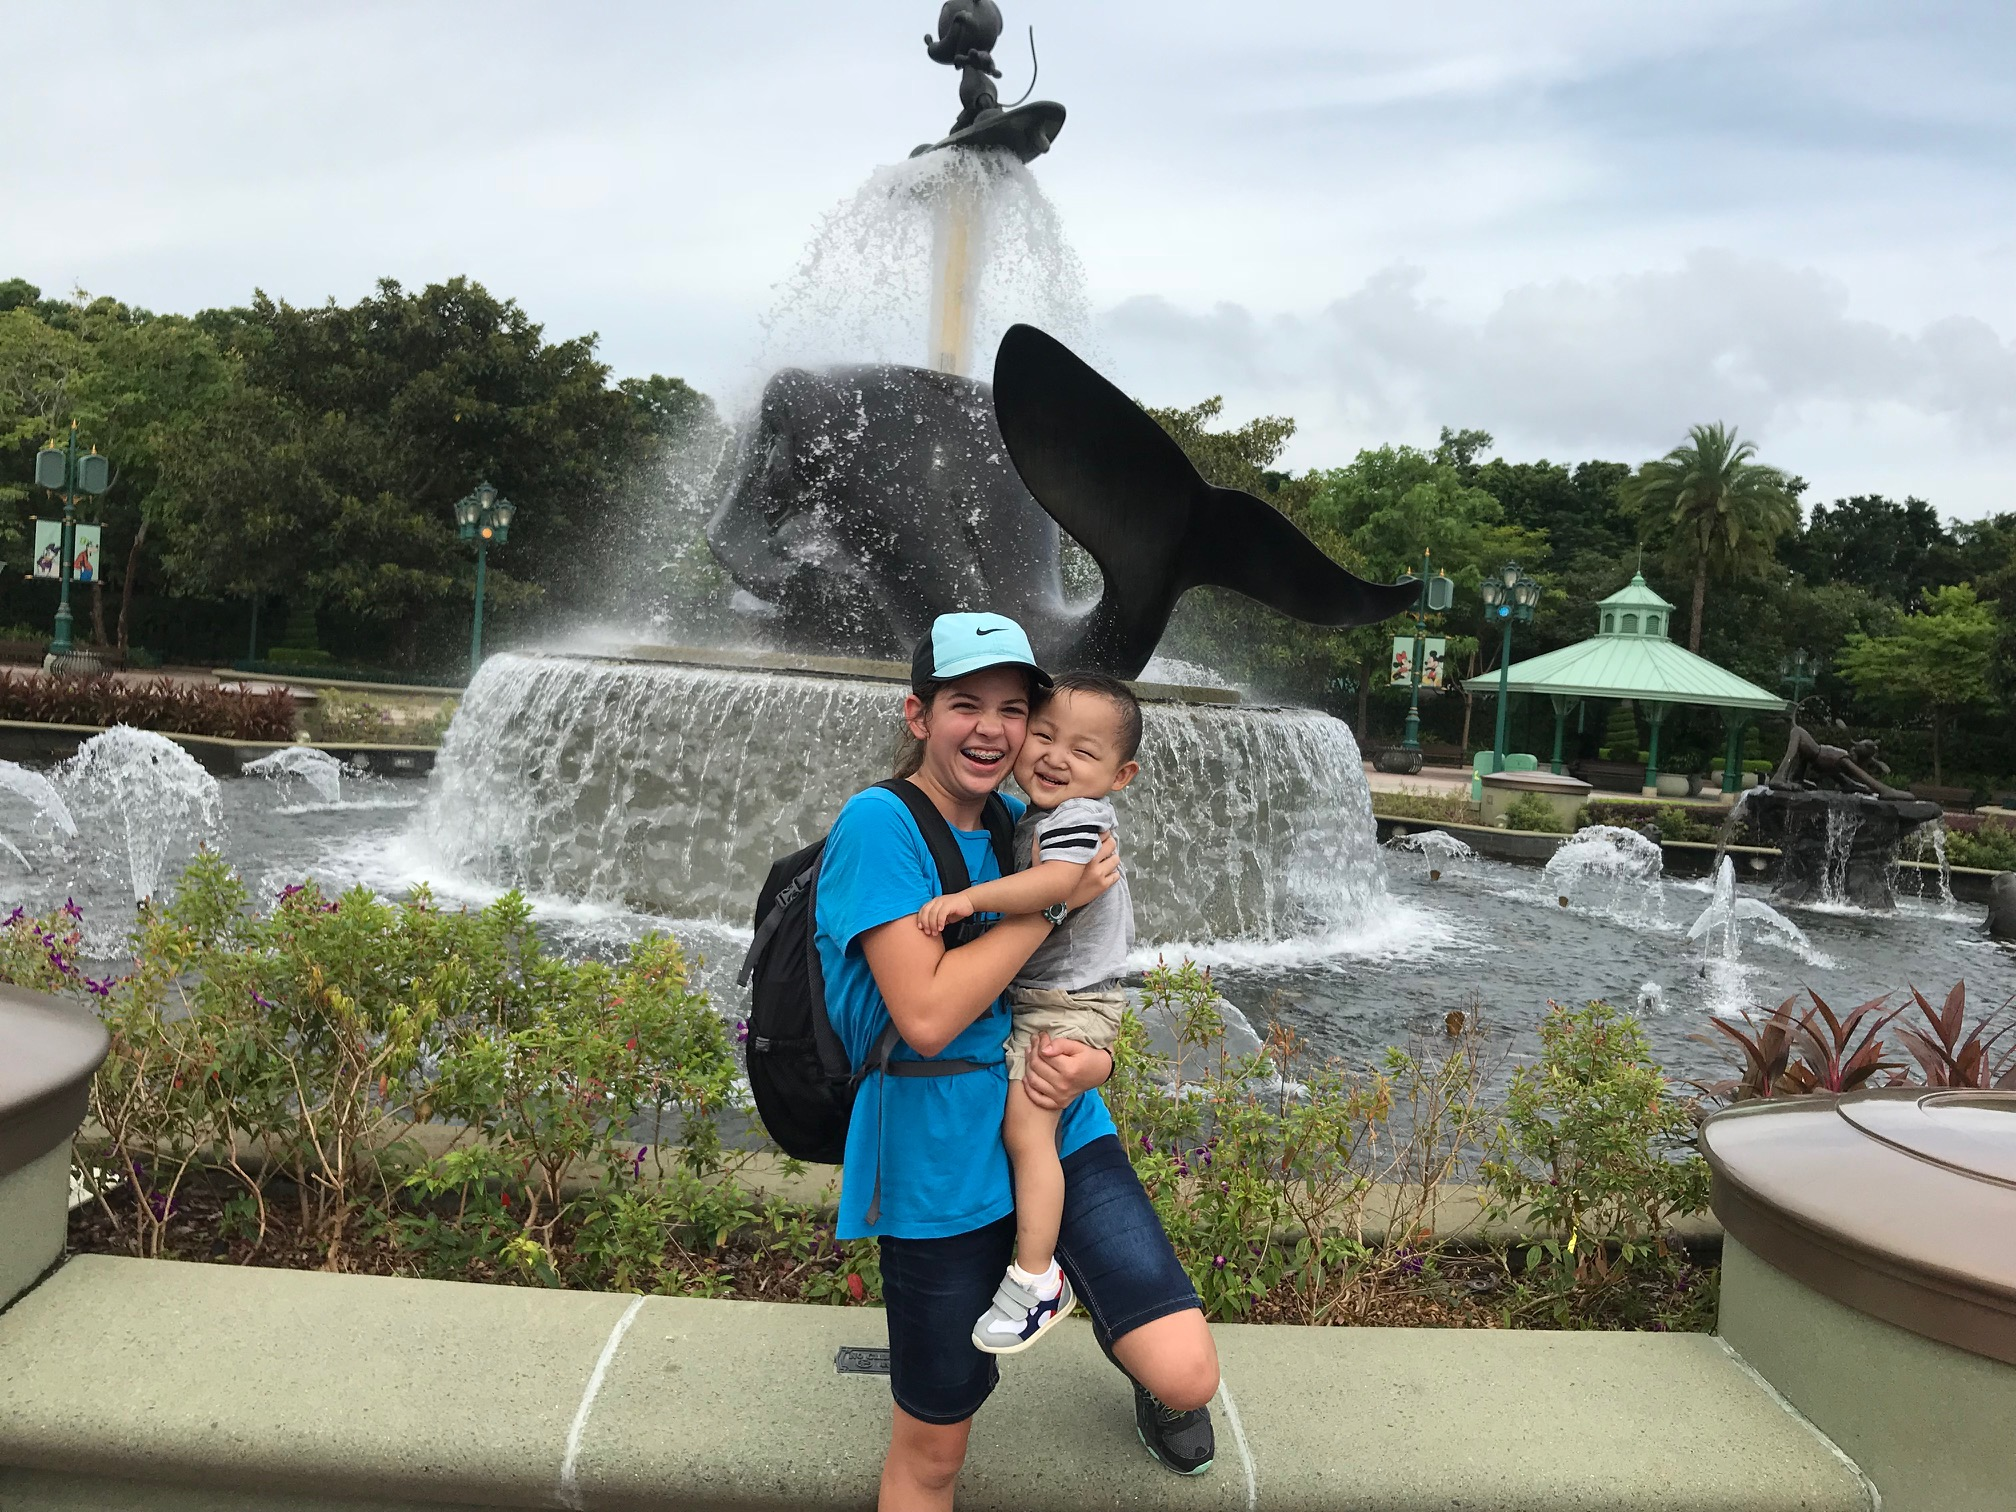 We did get a lot of smiles out of Luke today... he especially loved the fountain that responded to music.